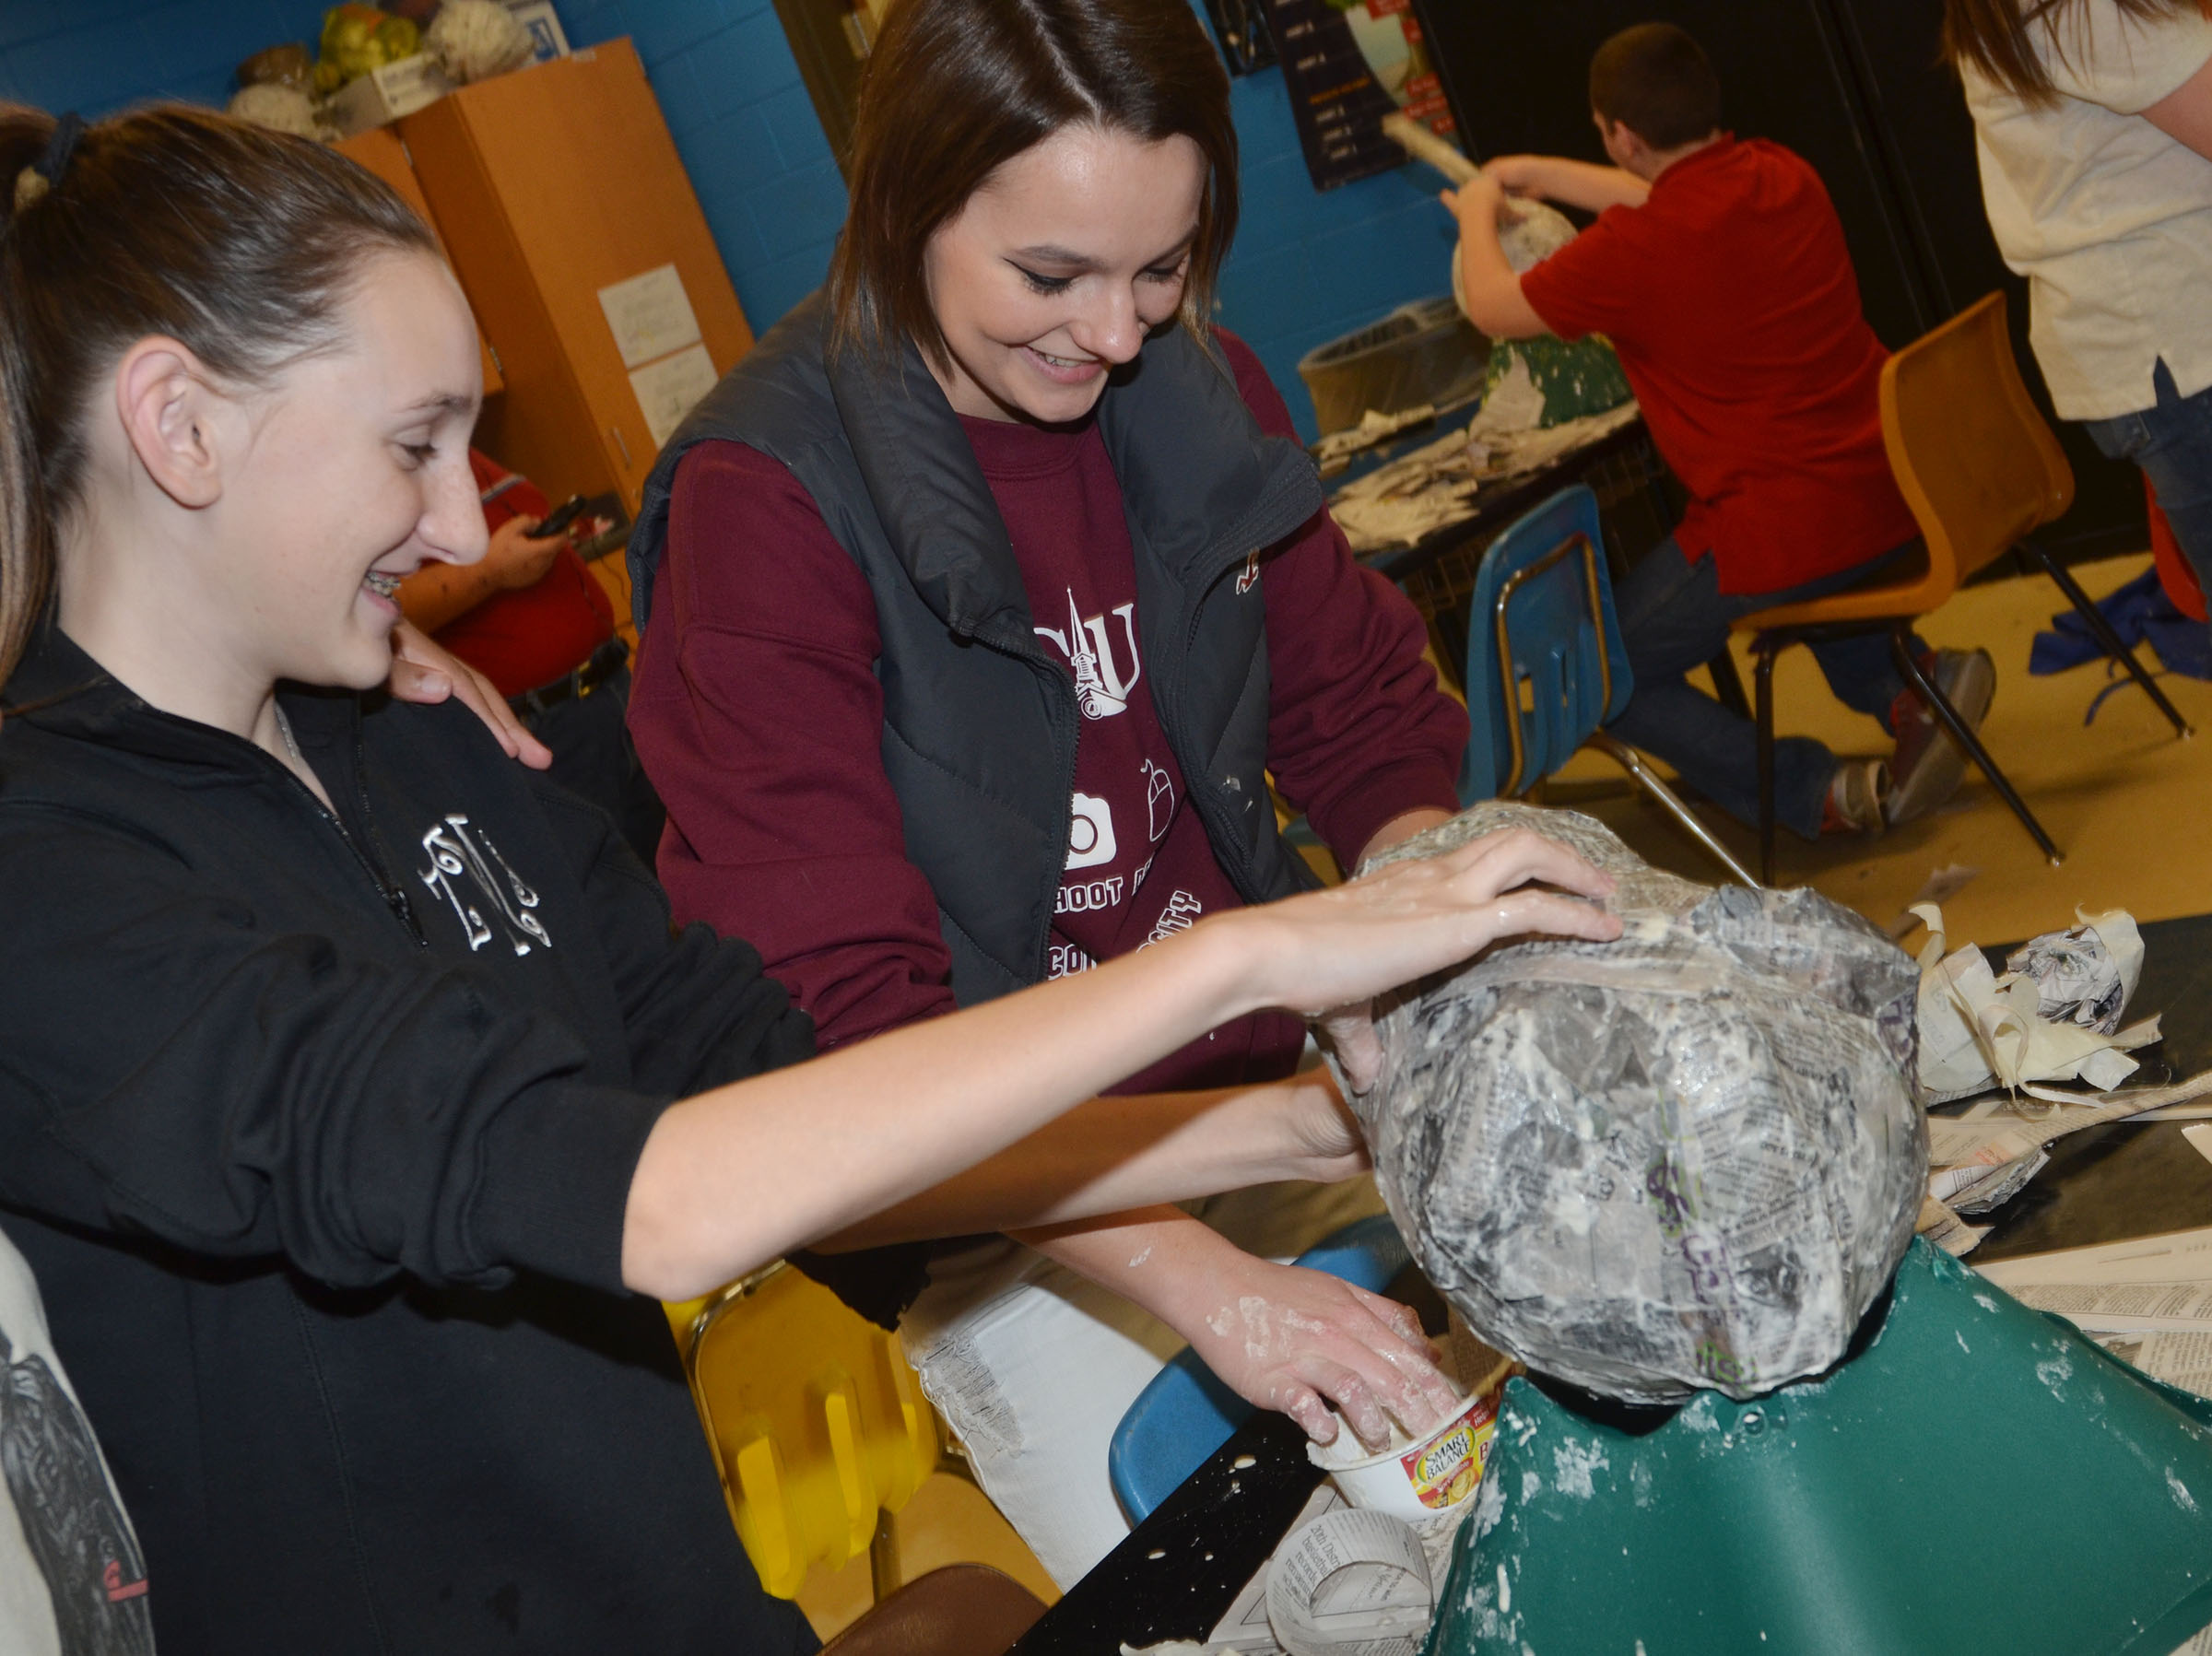 CHS freshman Zoe McAninch, at left, and senior Kyrsten Hill work on their 3D paper mache project.